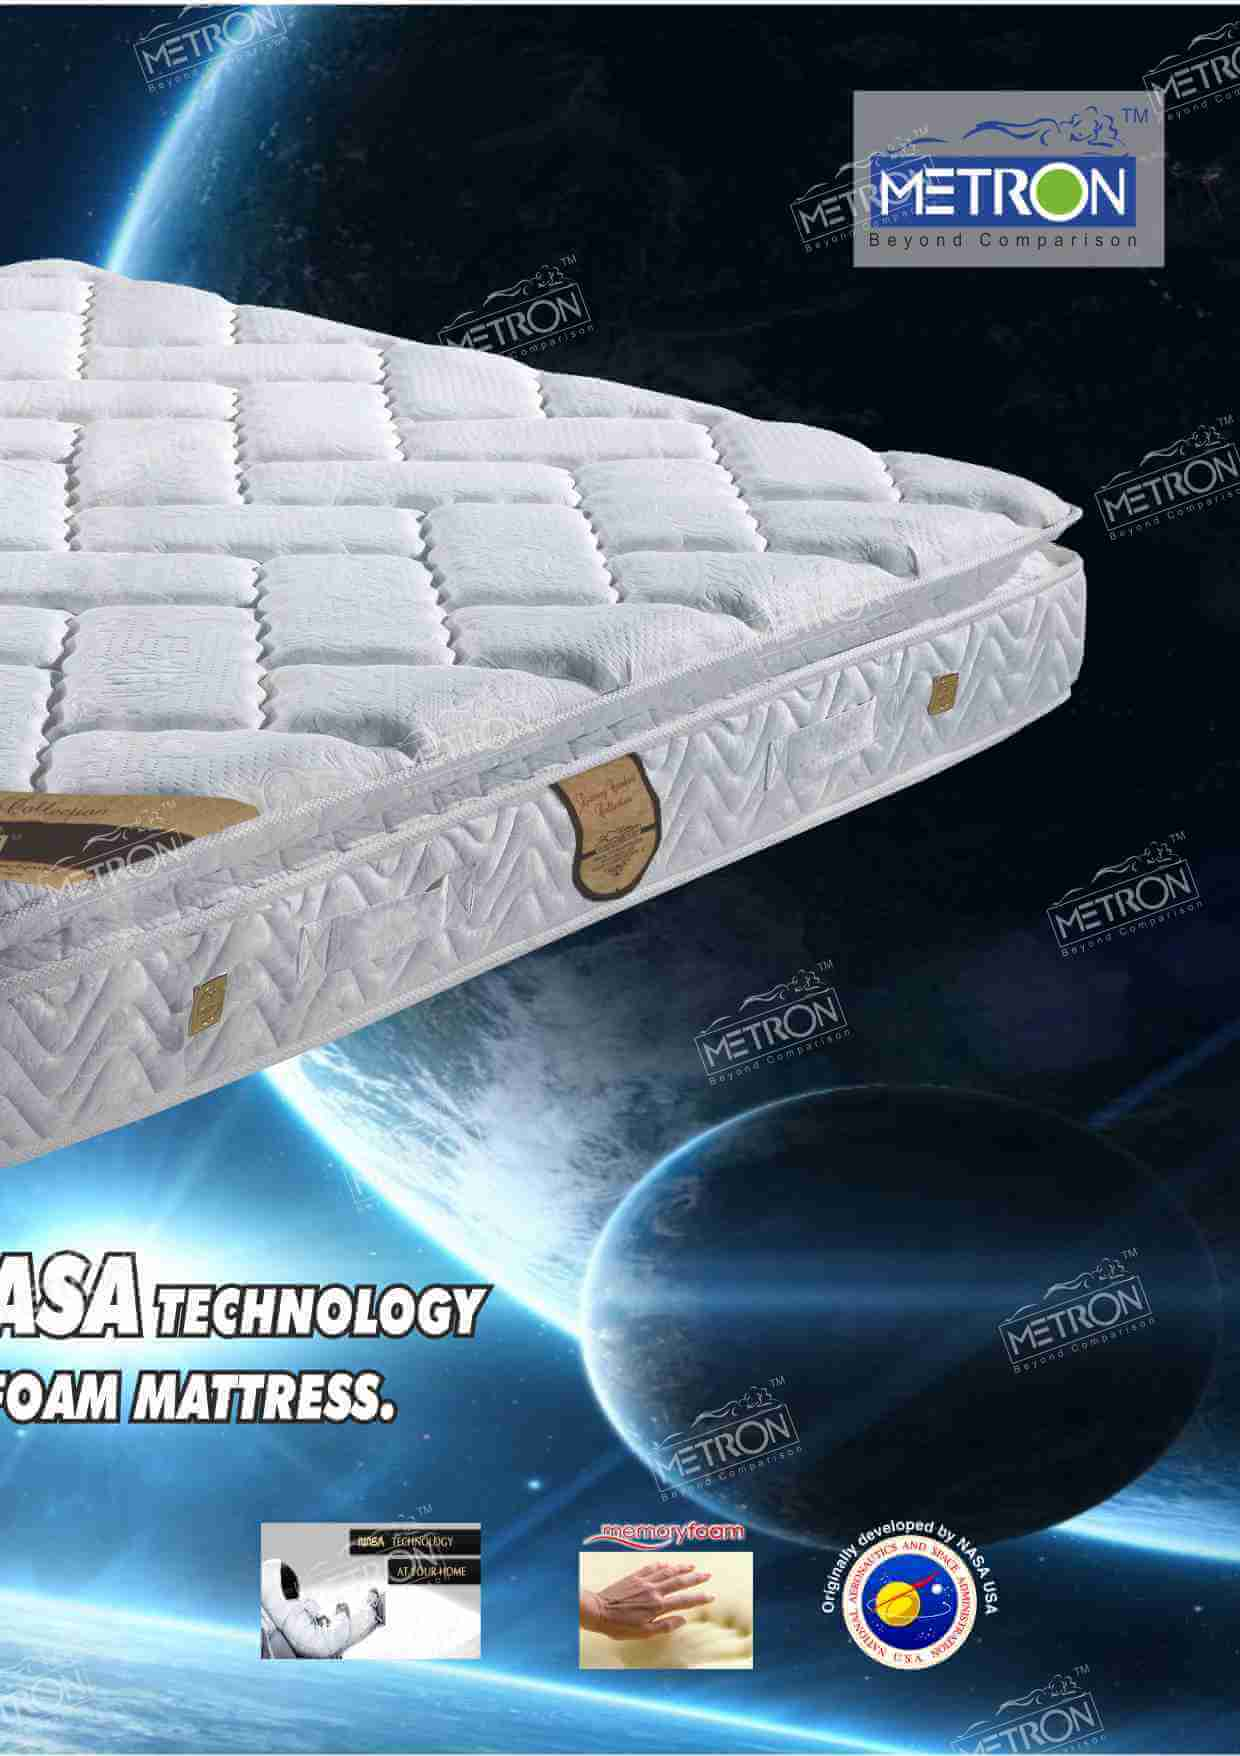 Royal Vintage memory foam mattress Metron